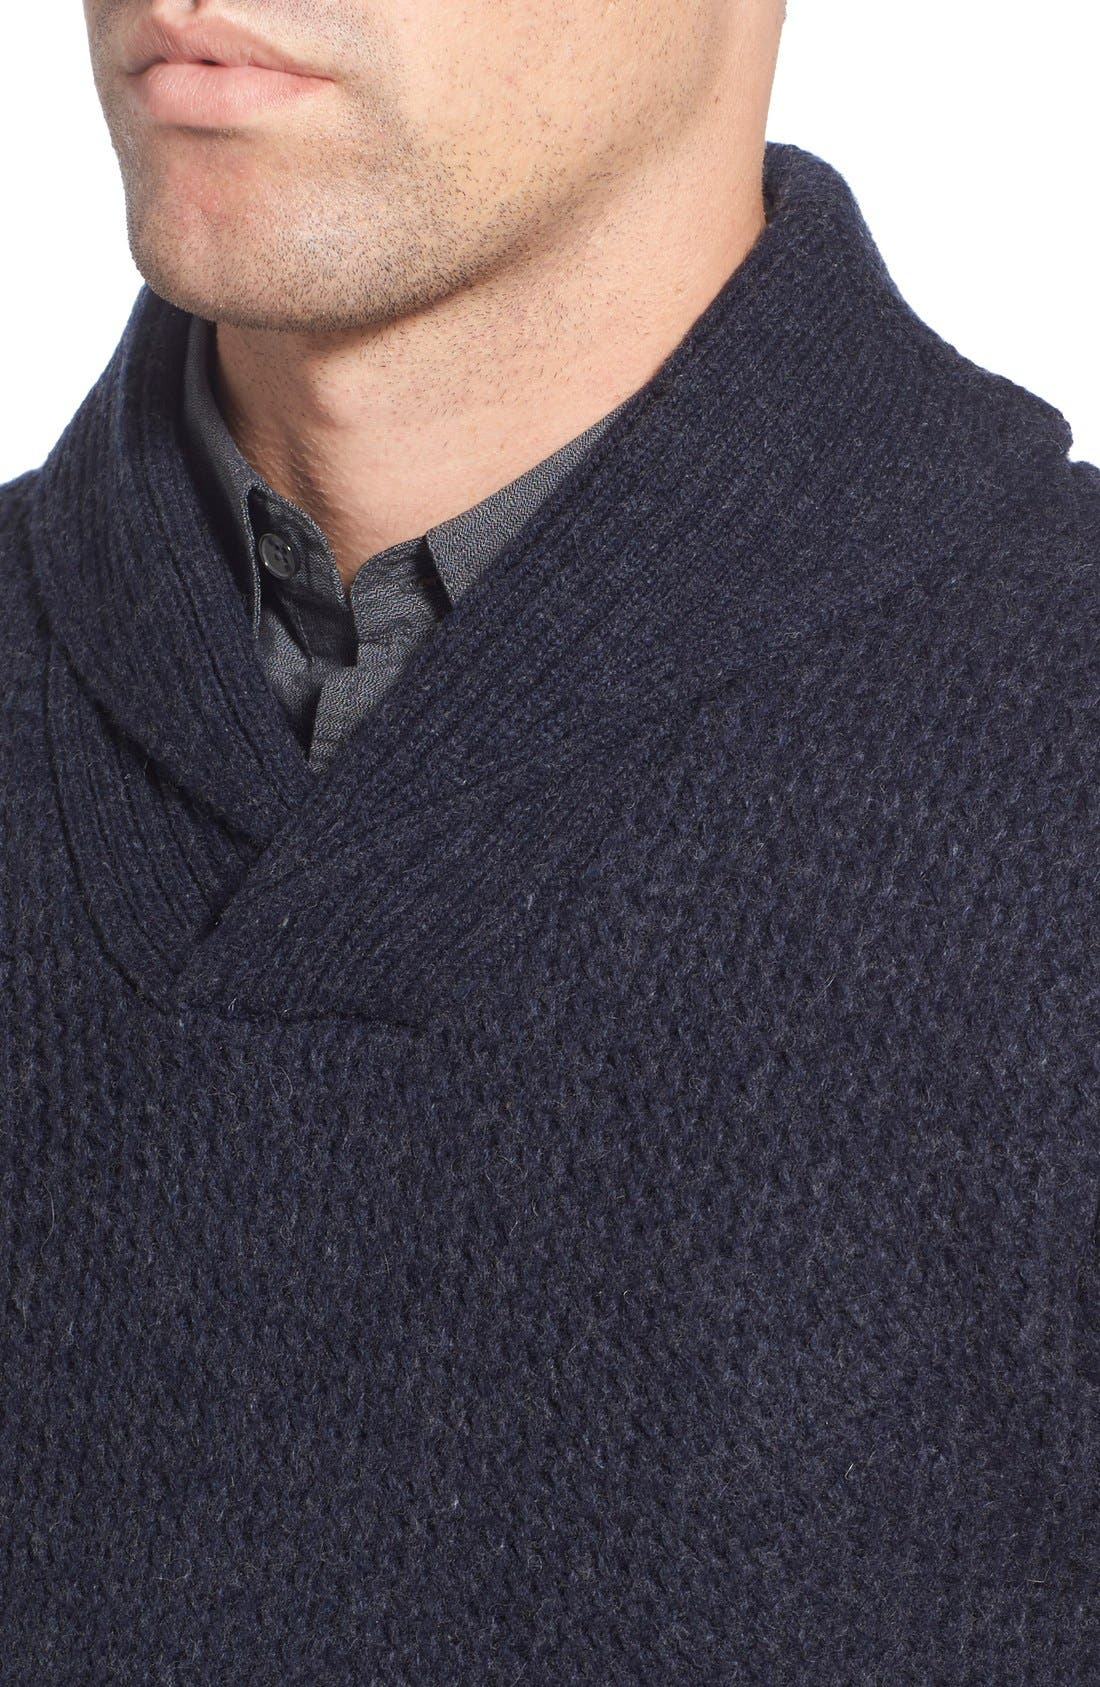 Regular Fit Shawl Collar Sweater,                             Alternate thumbnail 4, color,                             Navy